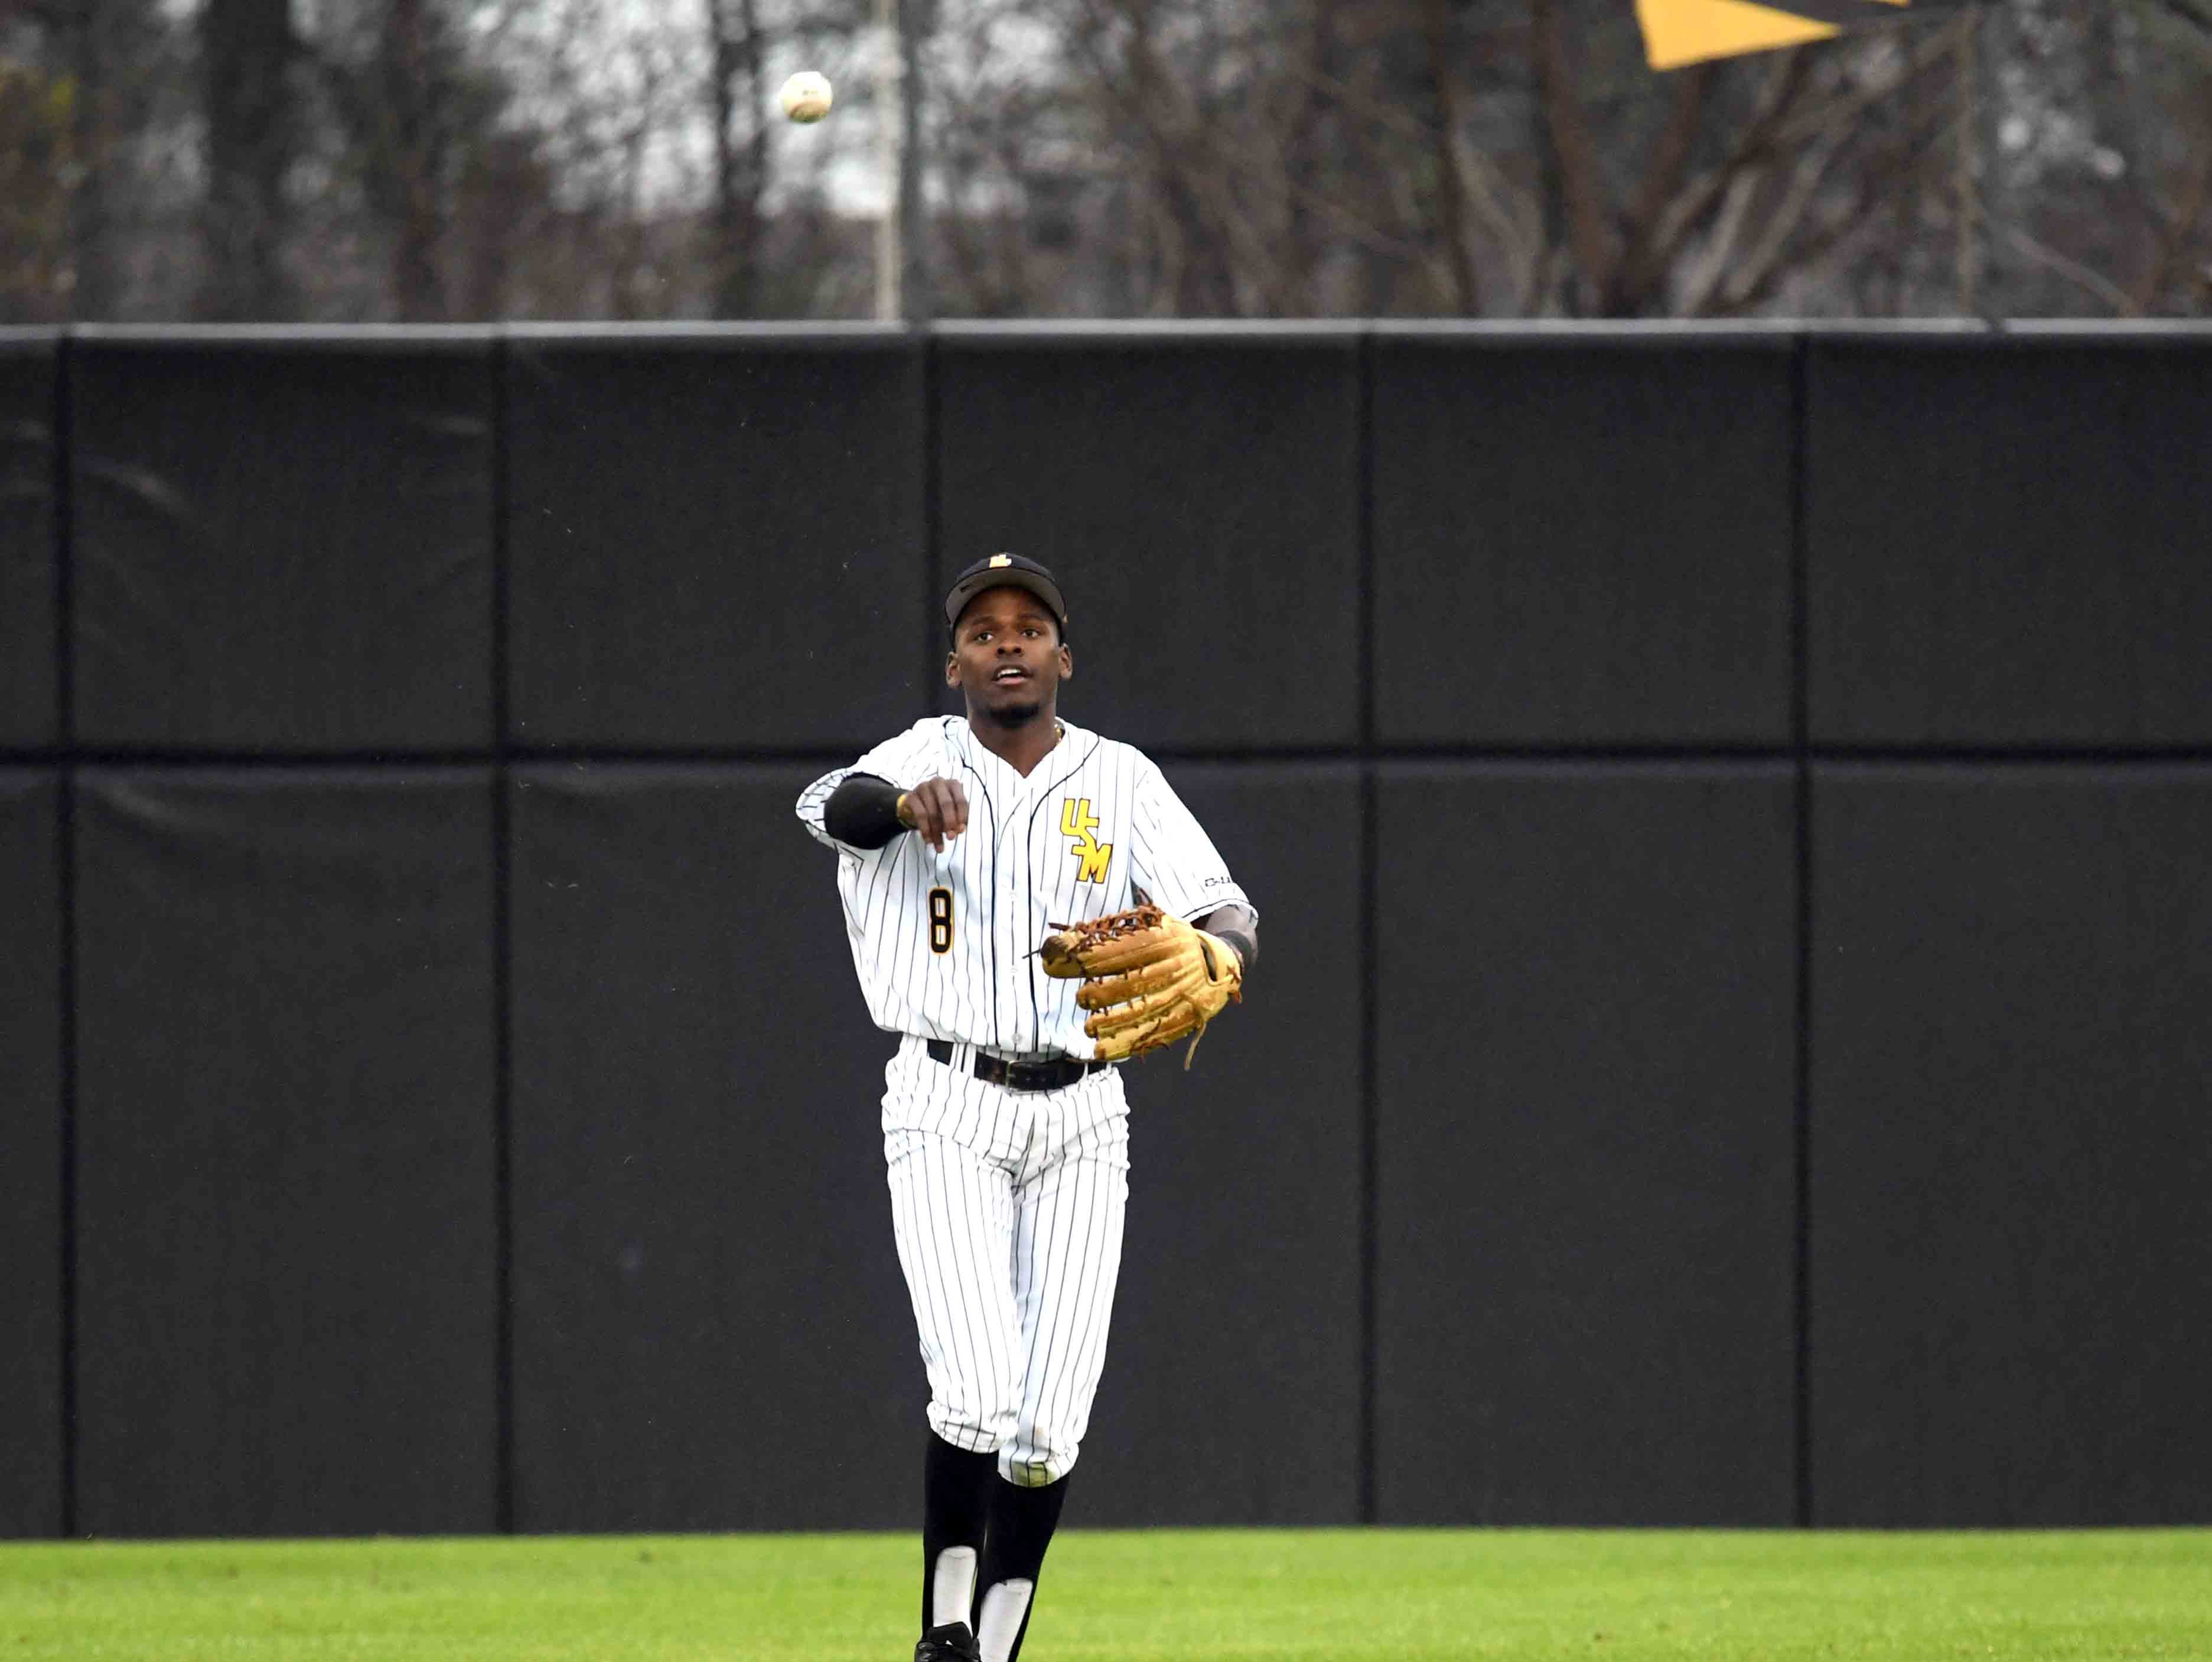 Southern Miss outfielder Fred Franklin throws back the ball  in the season opener against Purdue on Friday, February 15, 2019.